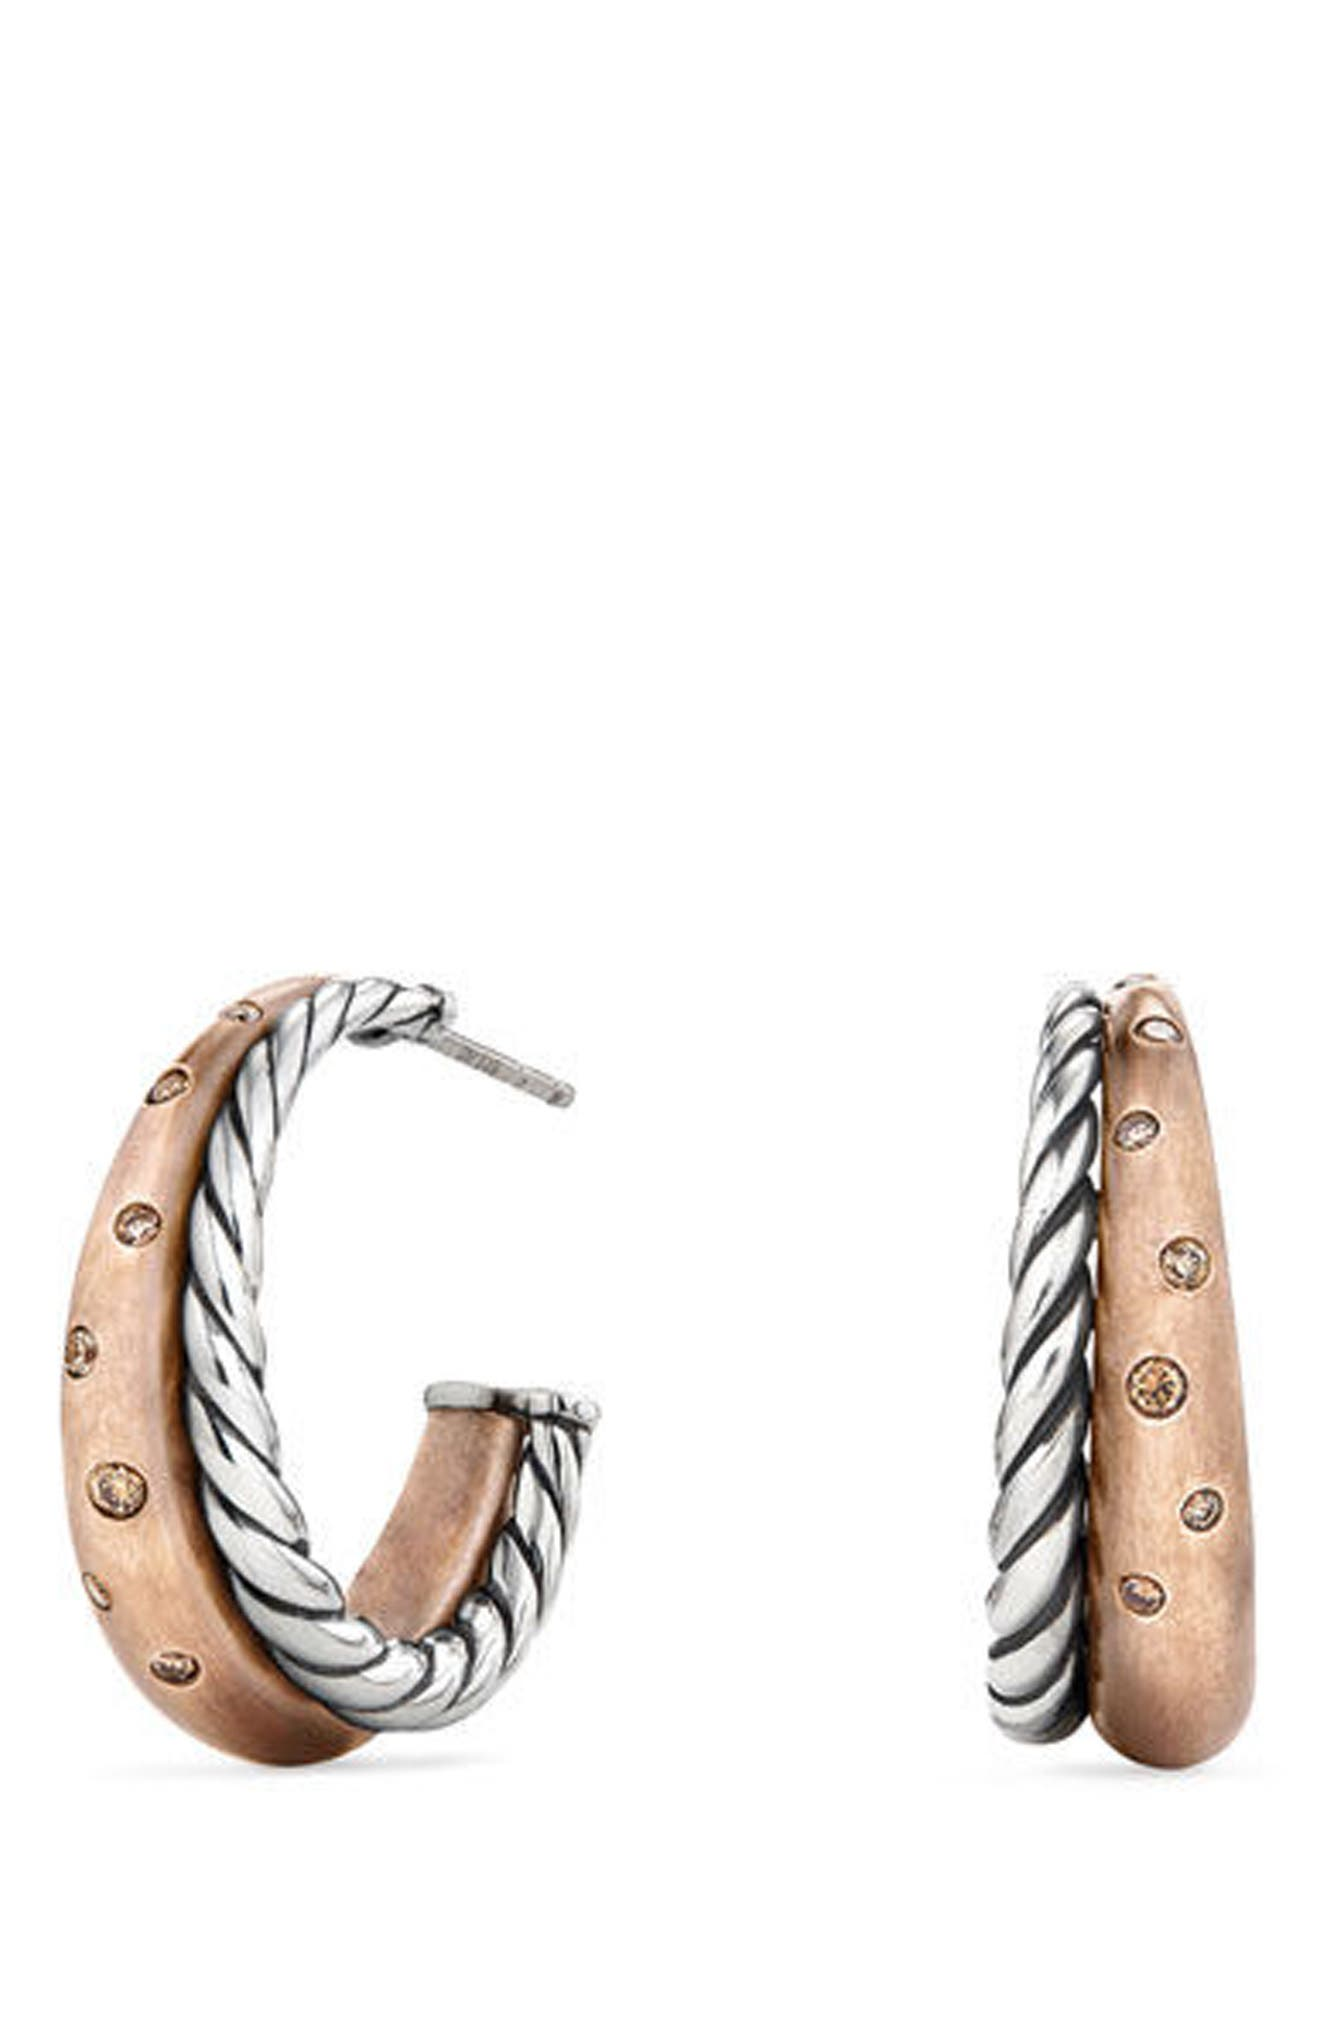 David Yurman Pure Form Mixed Metal Hoop Earrings with Diamonds, Bronze & Silver, 26.5mm